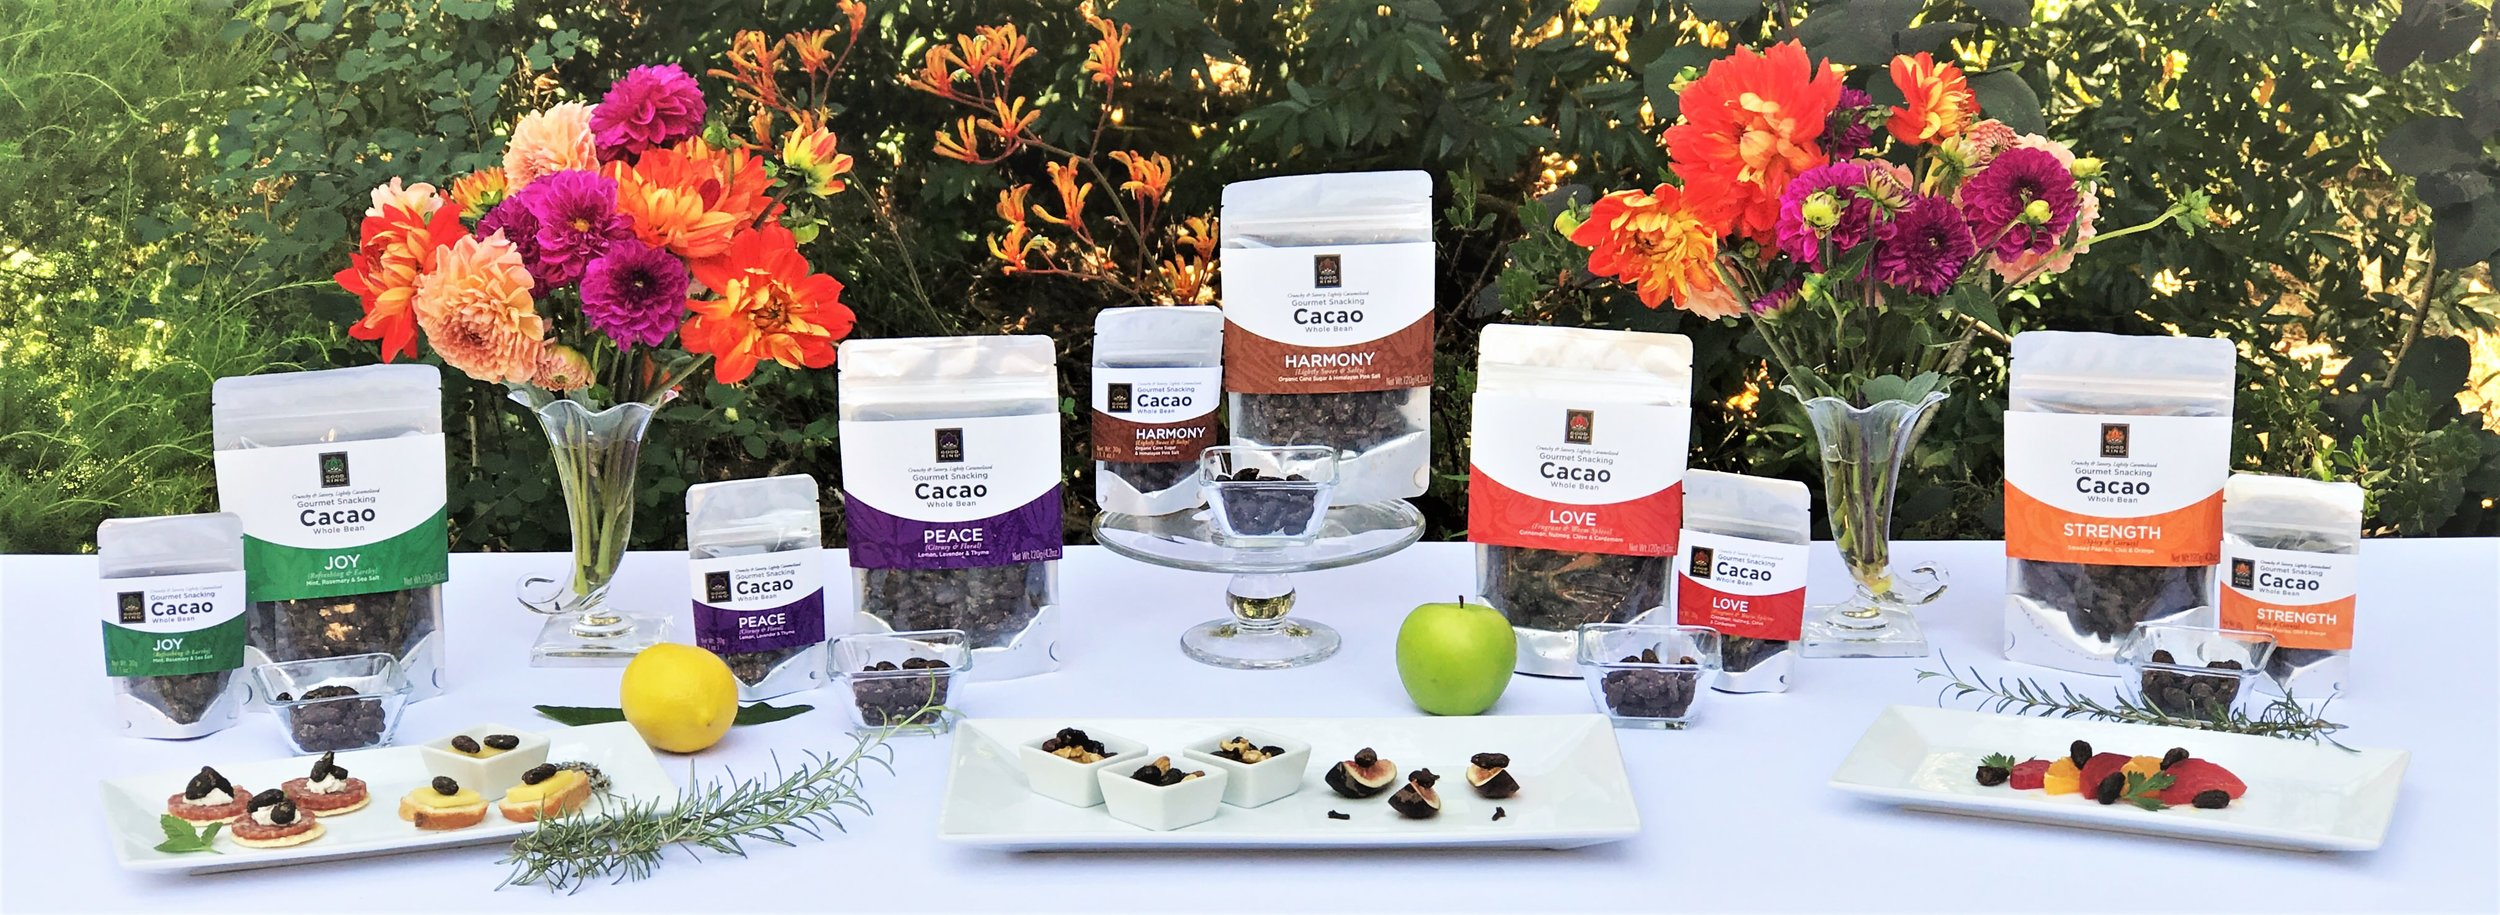 good-king-gourmet-snacking-cacao-recipes-pairings-table-5-flavors-2-sizes.jpg